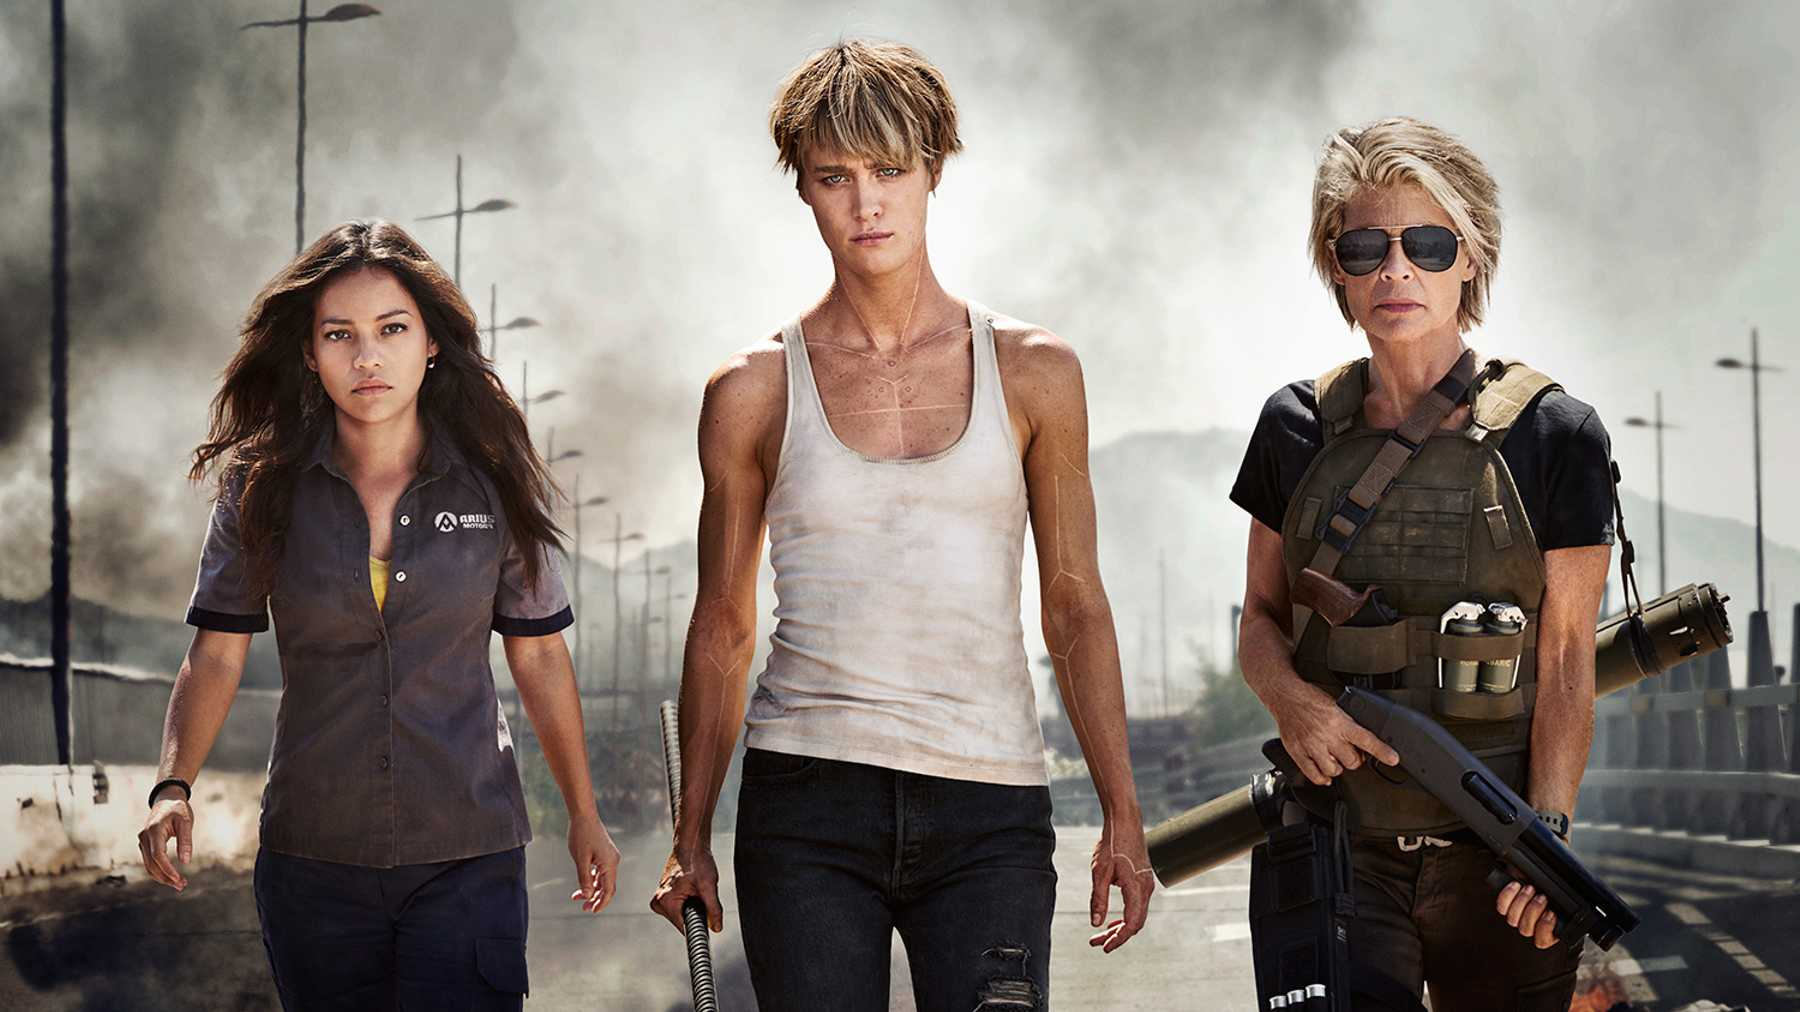 Terminator: Dark Fate - Release Date, Cast, Plot, Rating and Everything To Know